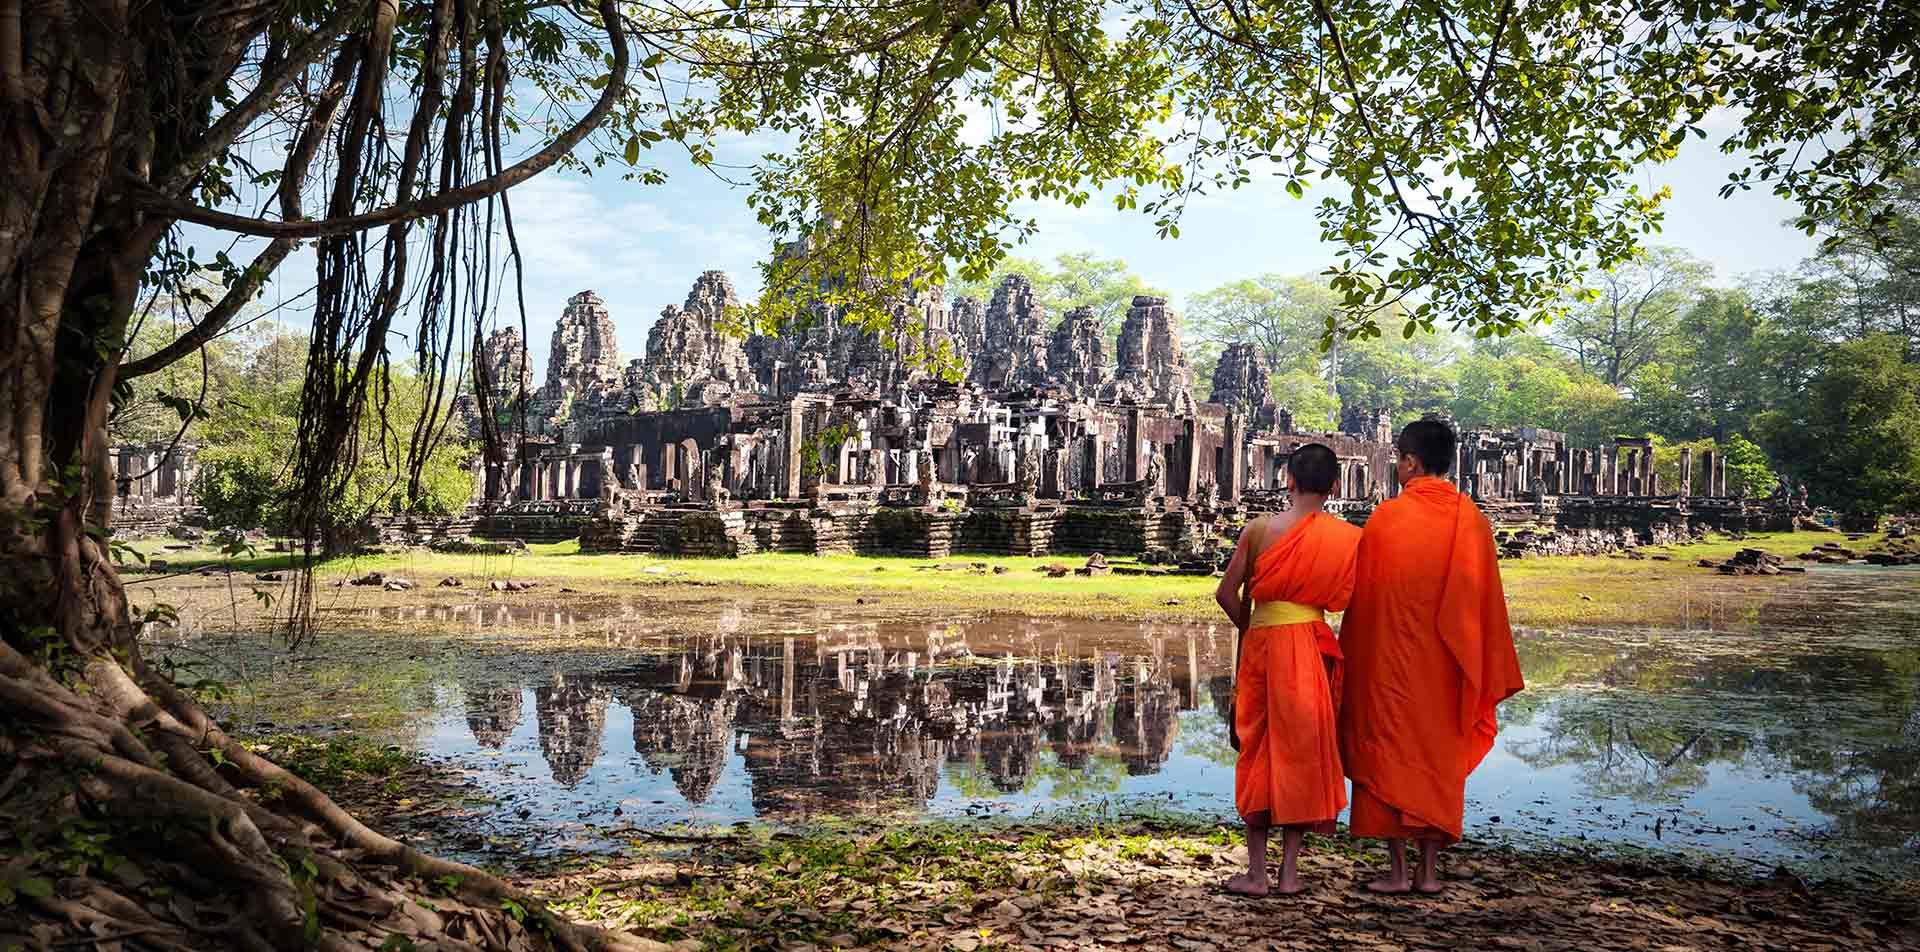 Asia Cambodia Siem Reap boy monks in Angkor Wat overlooking Bayon temple - luxury vacation destinations